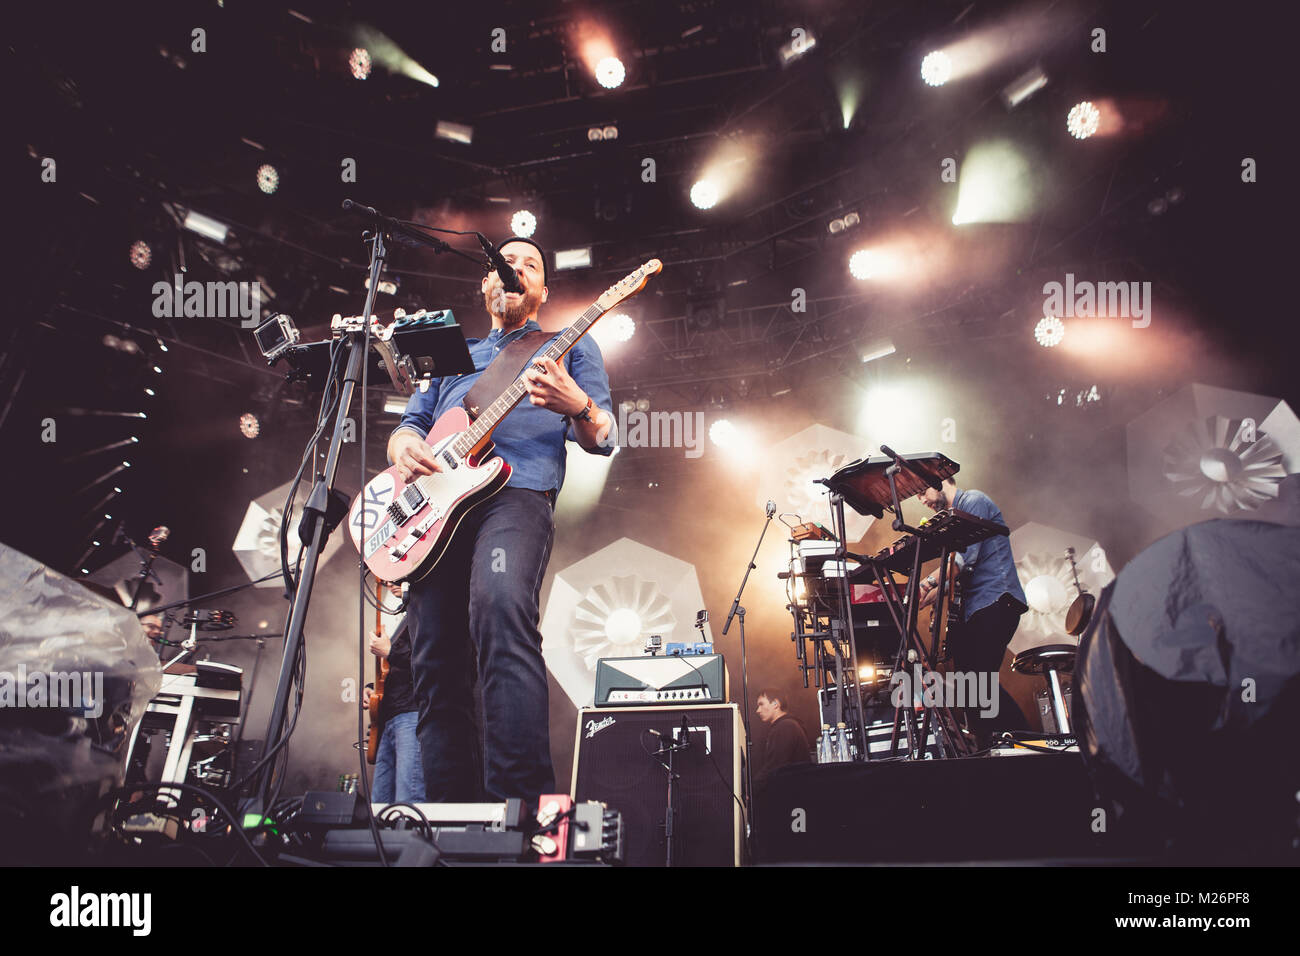 The alternative Danish rock band Kashmir is here pictured live on stage with singer and guitarist Kasper Eistrup - Stock Image